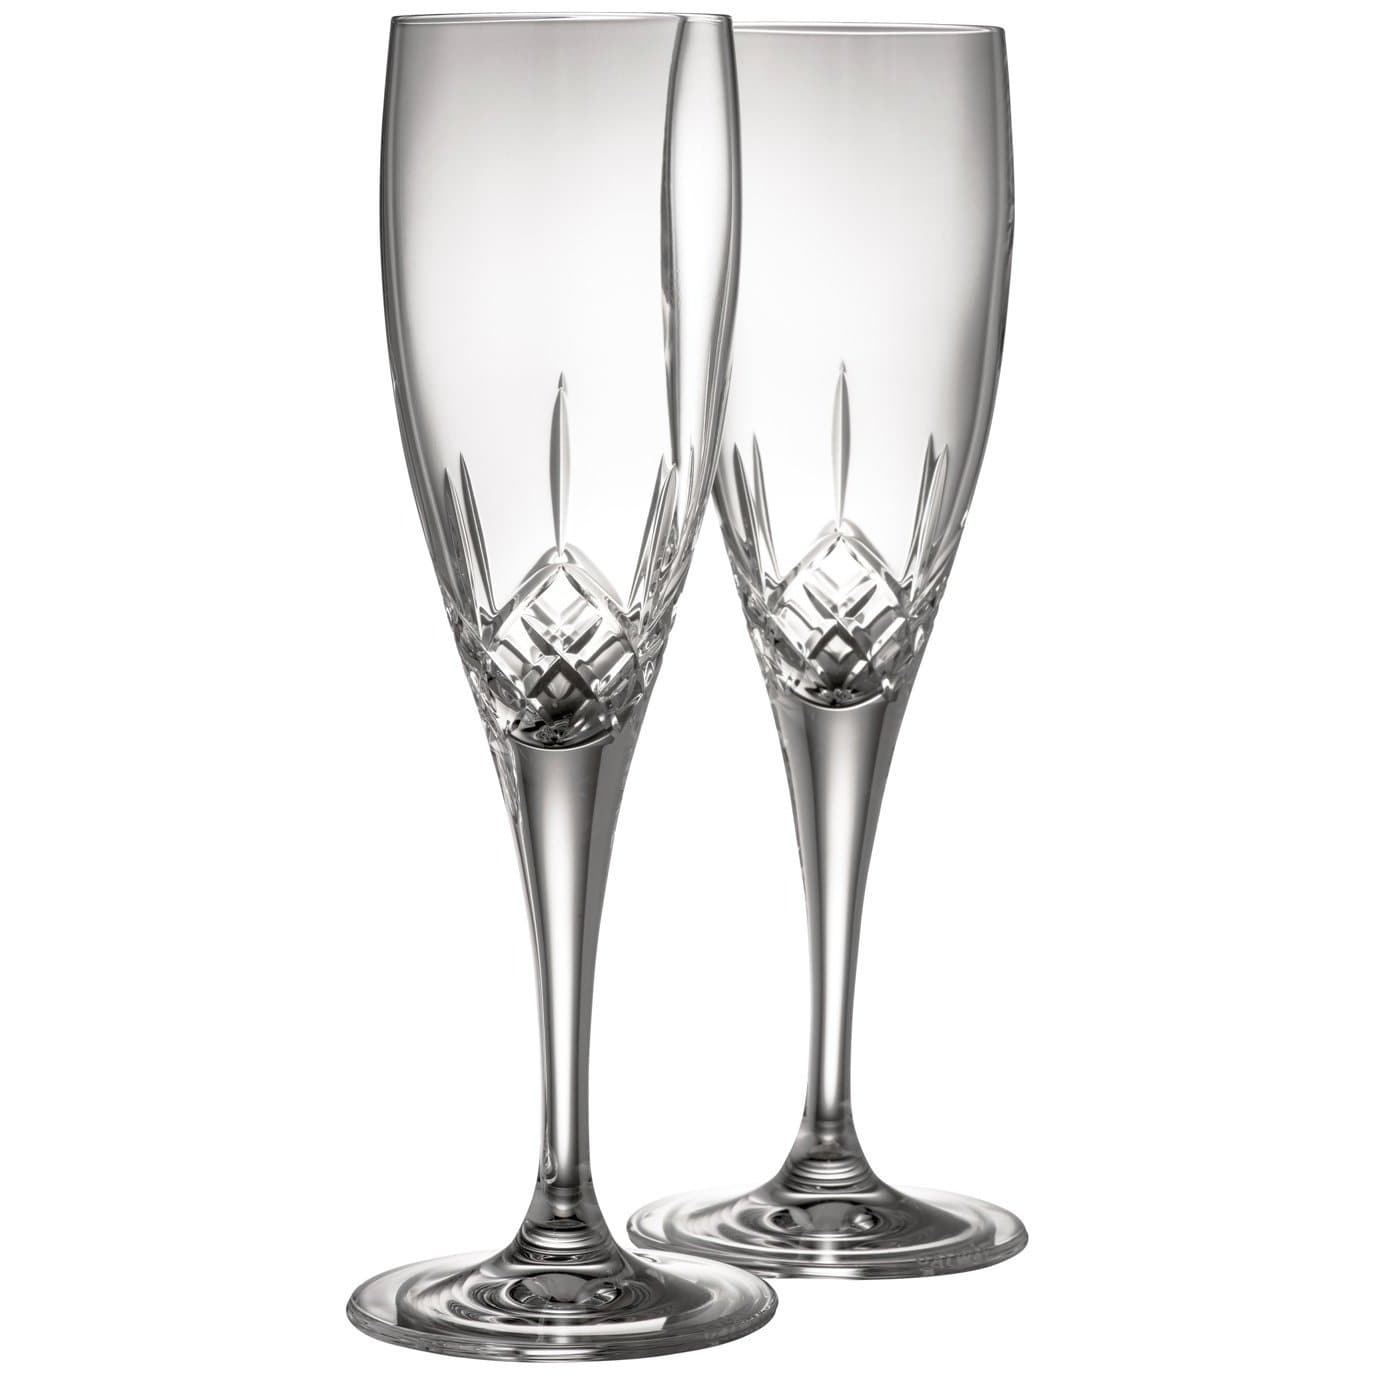 NEW Longford Flute Pair - Galway Irish Crystal